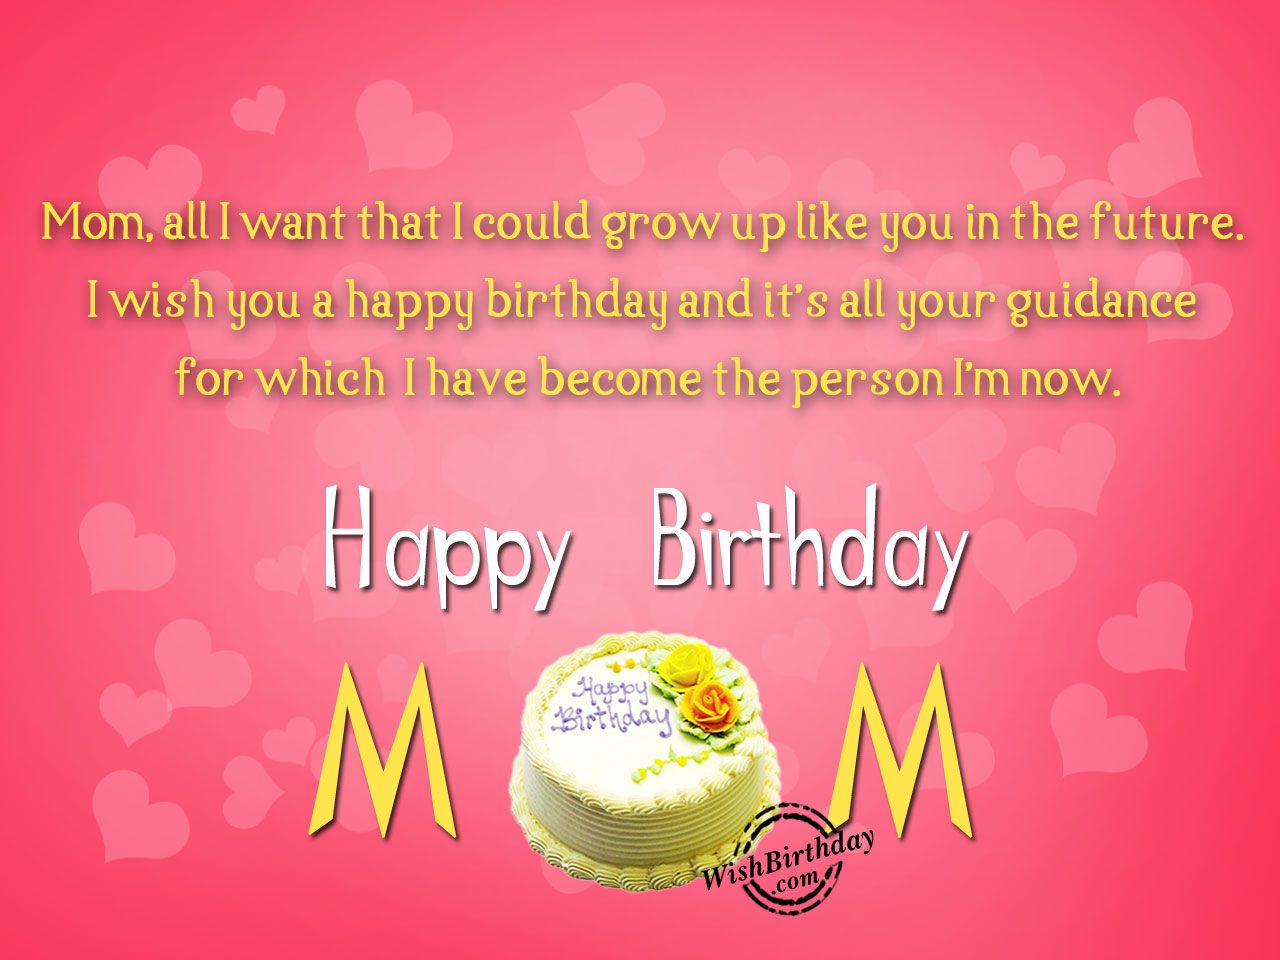 Birthday Wishes For Mother Birthday Images, Pictures